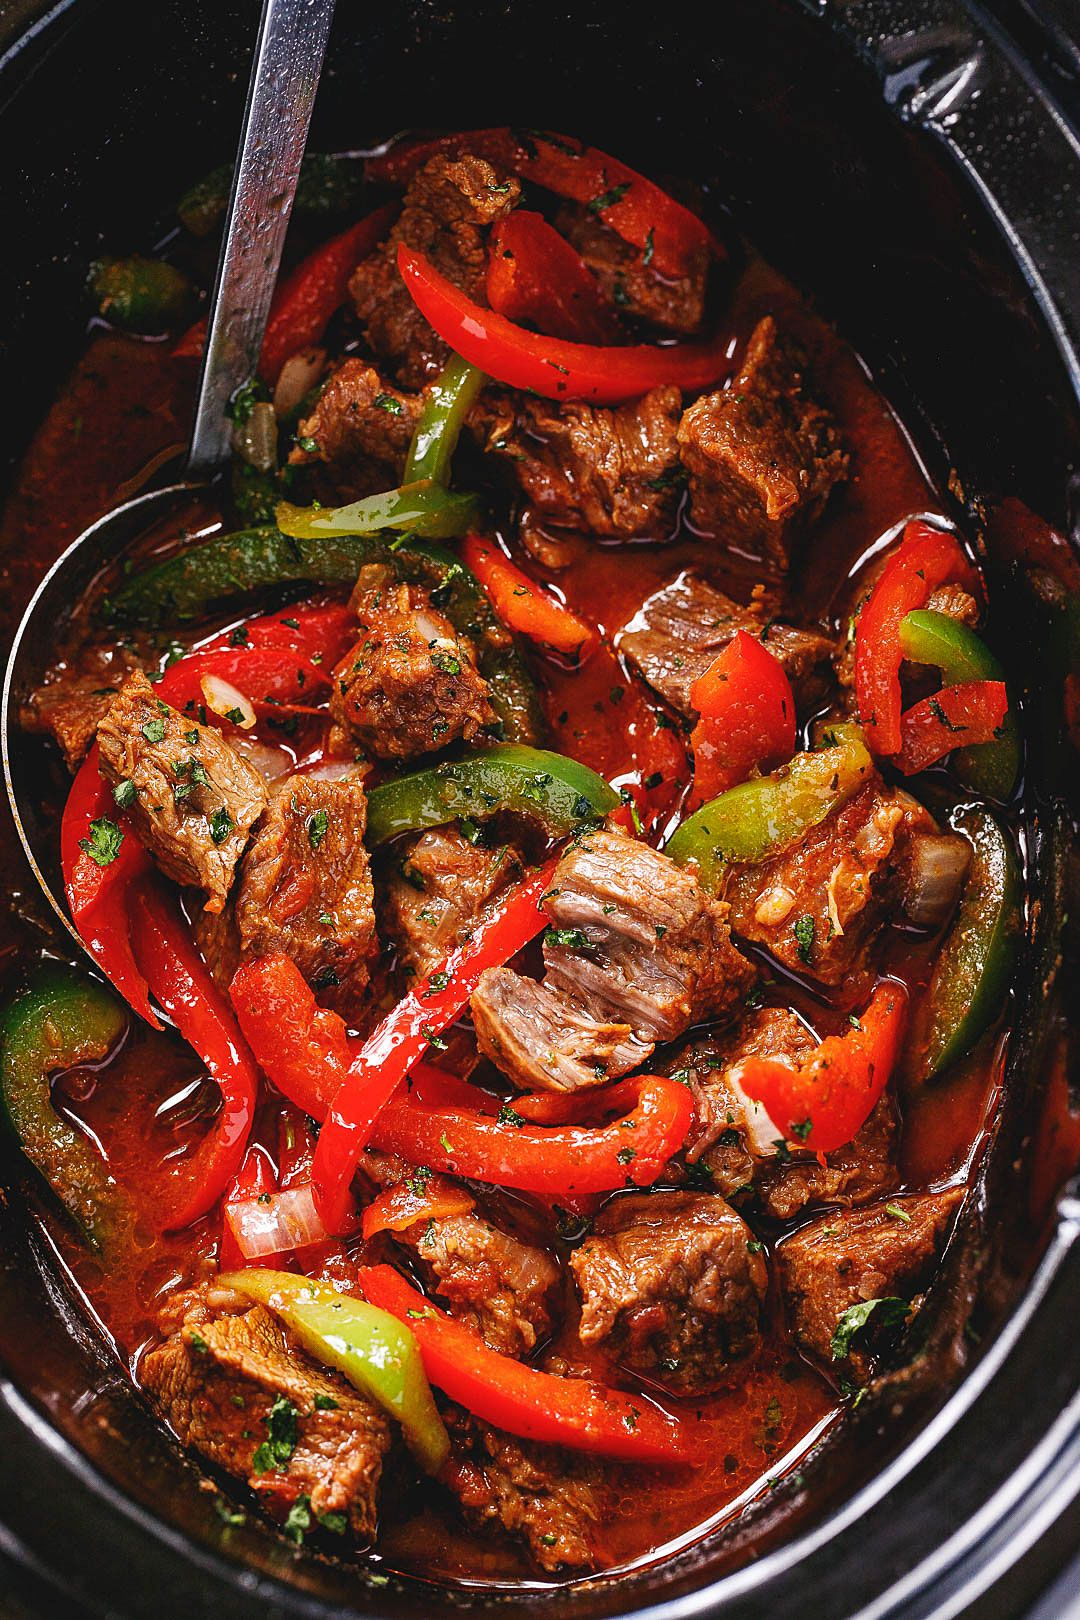 Crock-Pot Steak Fajita